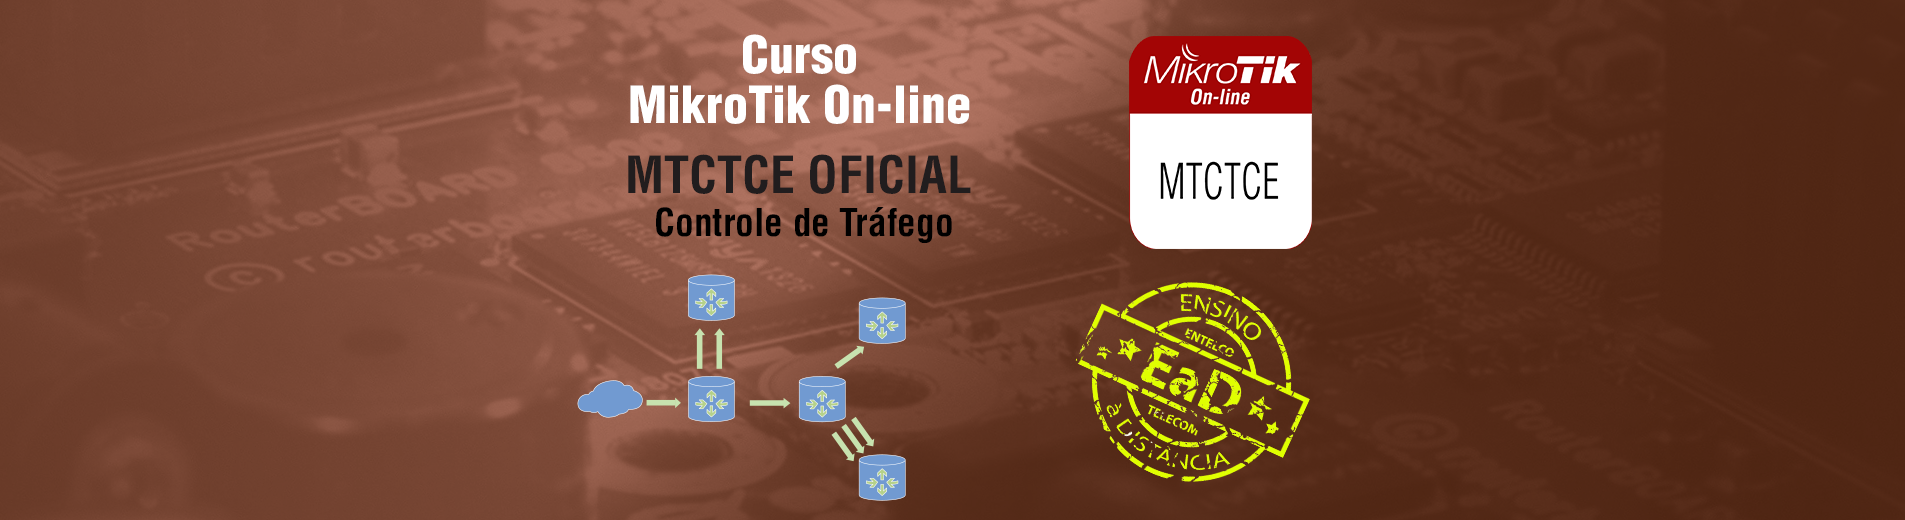 MTCTCE On-line